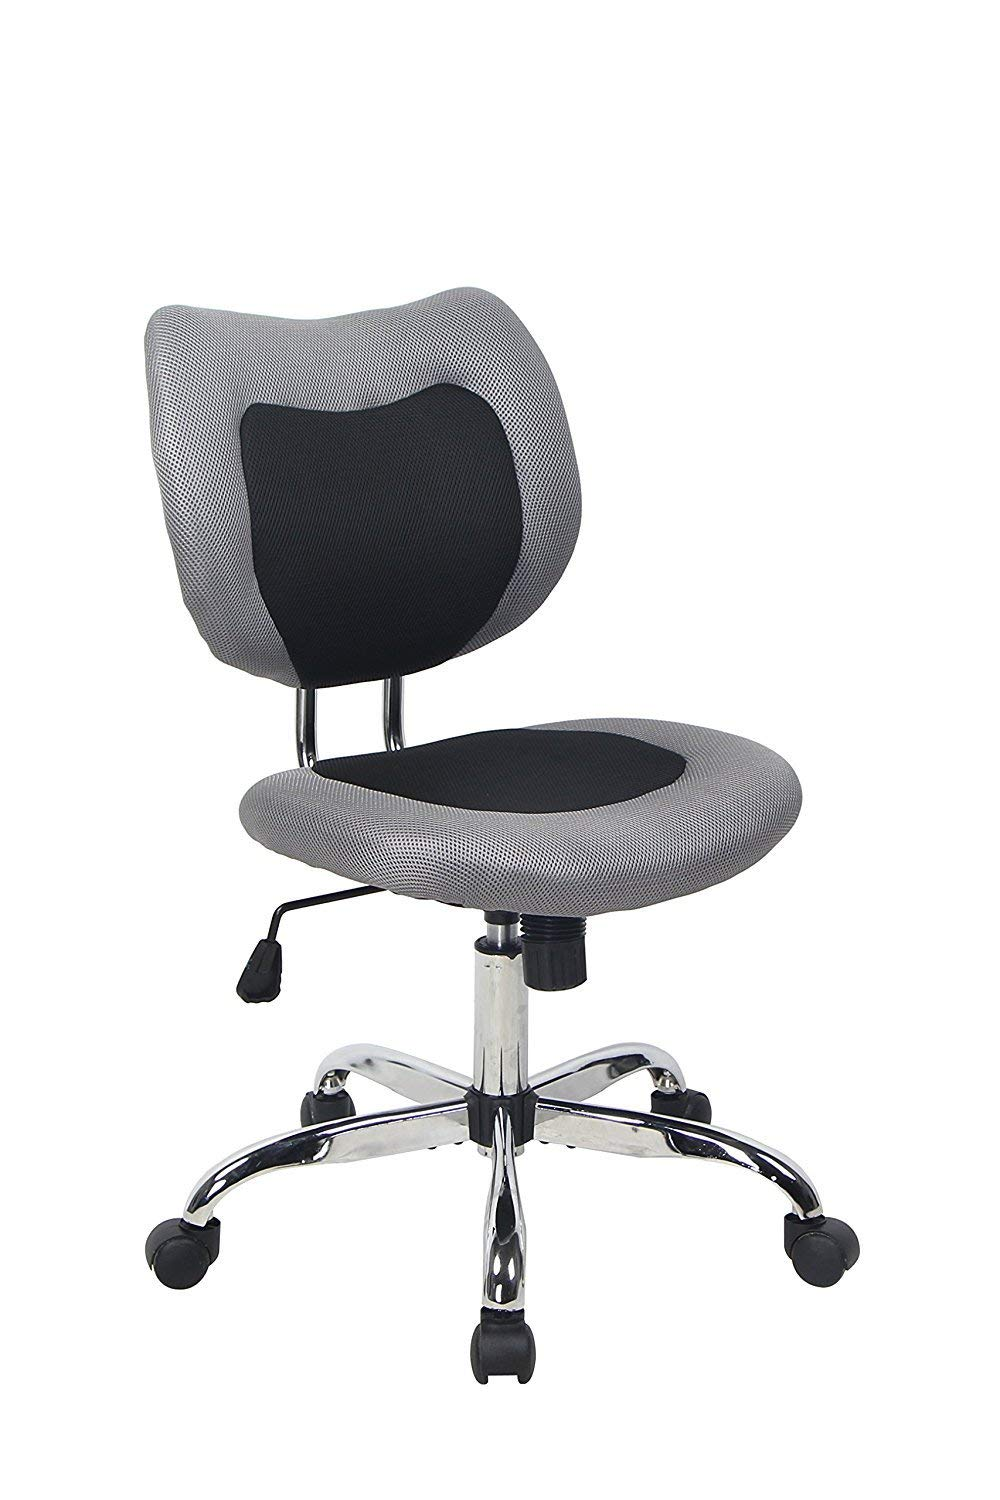 Swivel Desk Office Chair Low Back Armless Task Study Chair Adjustable Seat Height Mesh Home Chair - Black (Black)